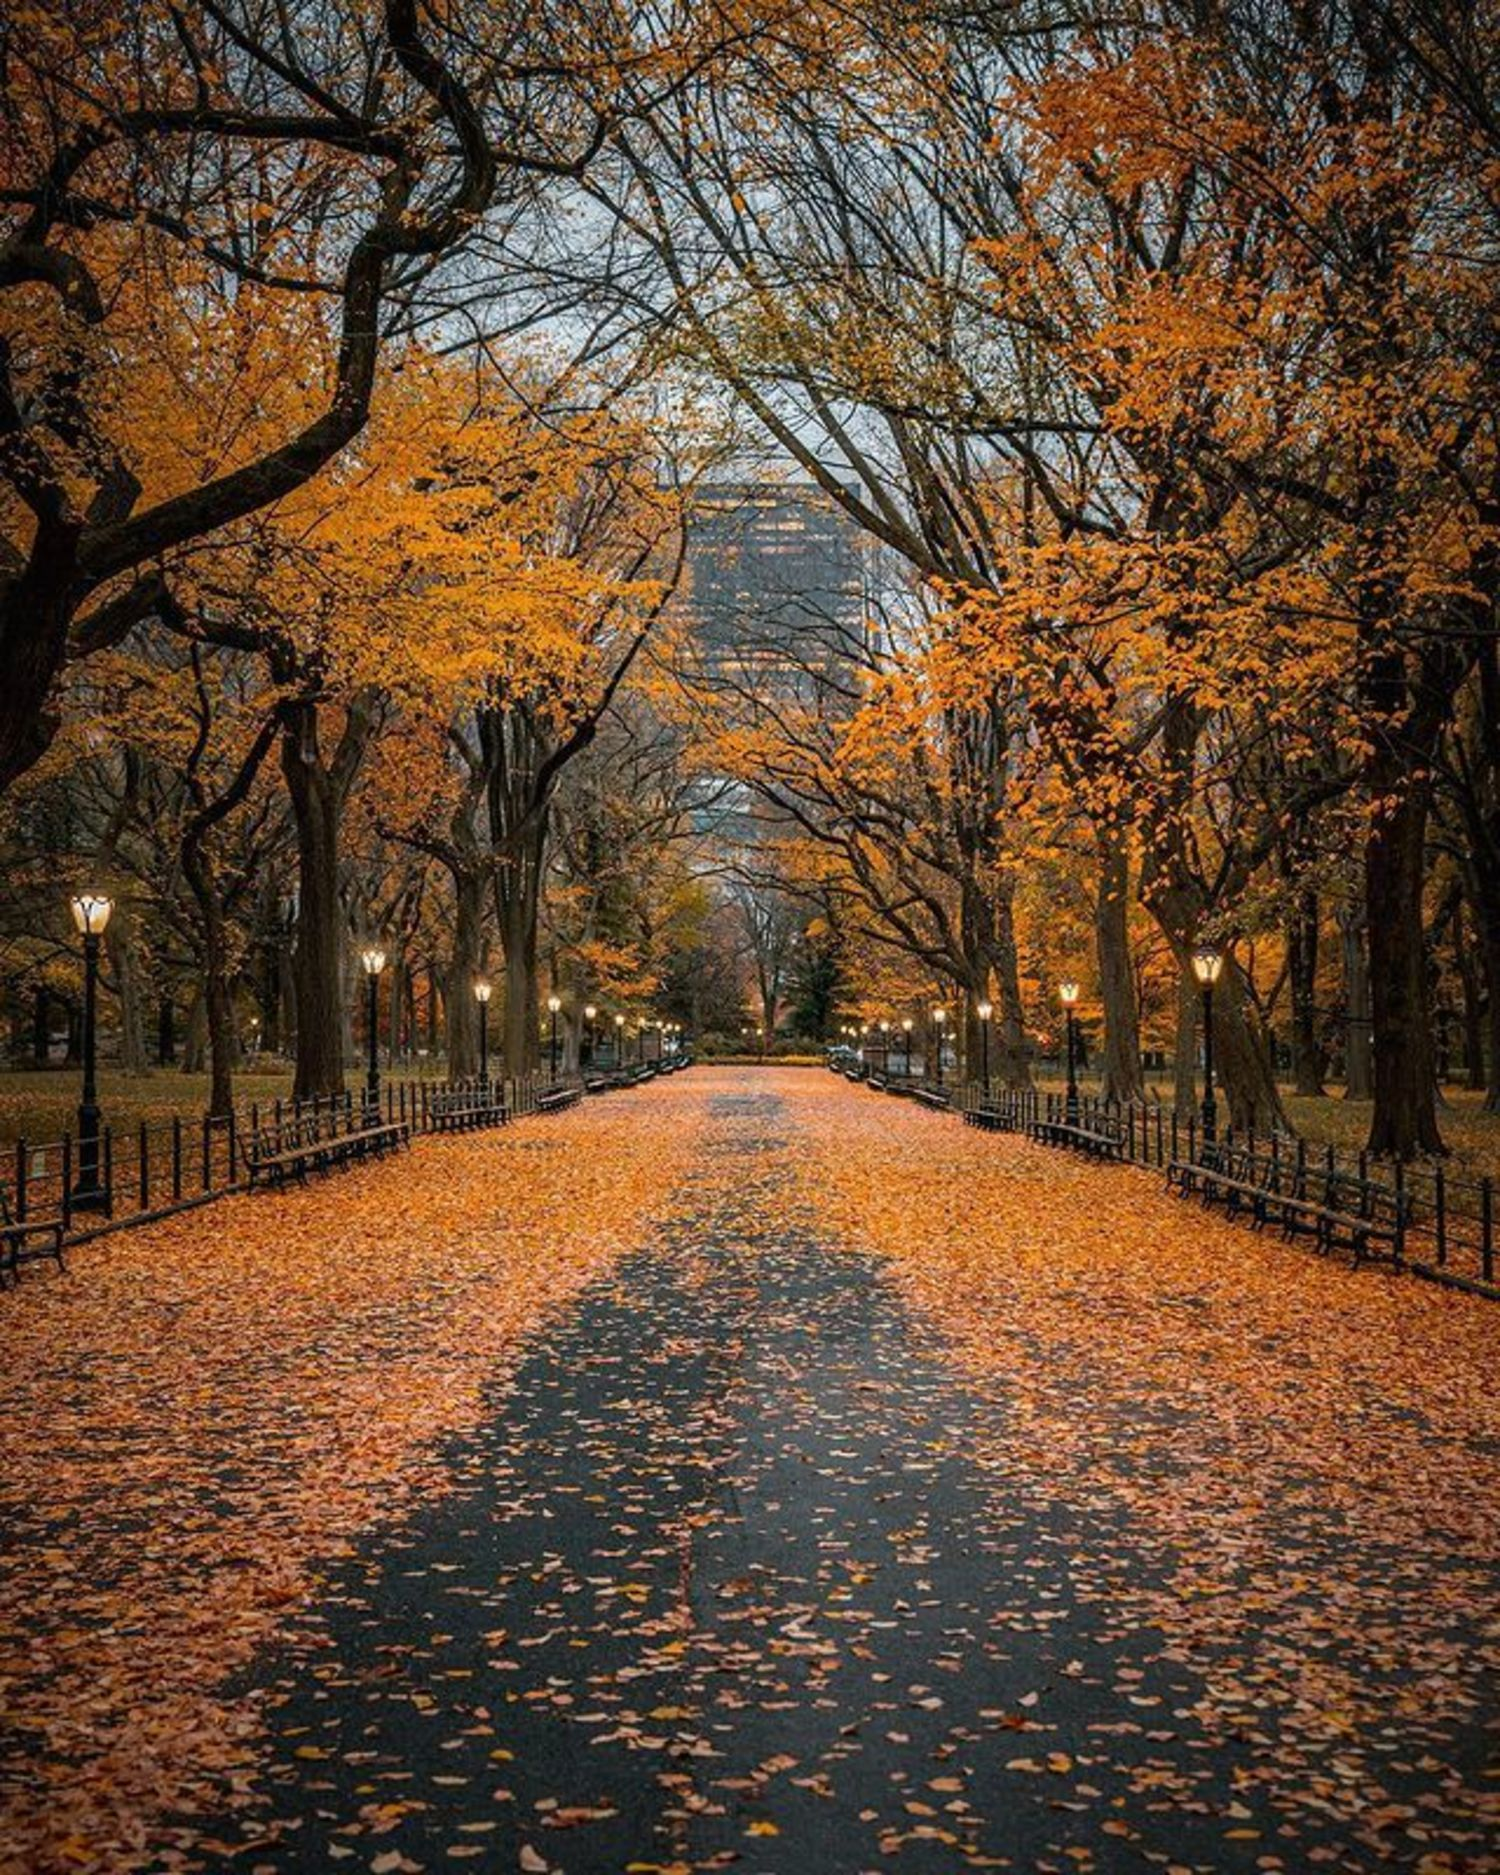 The Mall in Central Park, Manhattan, New York